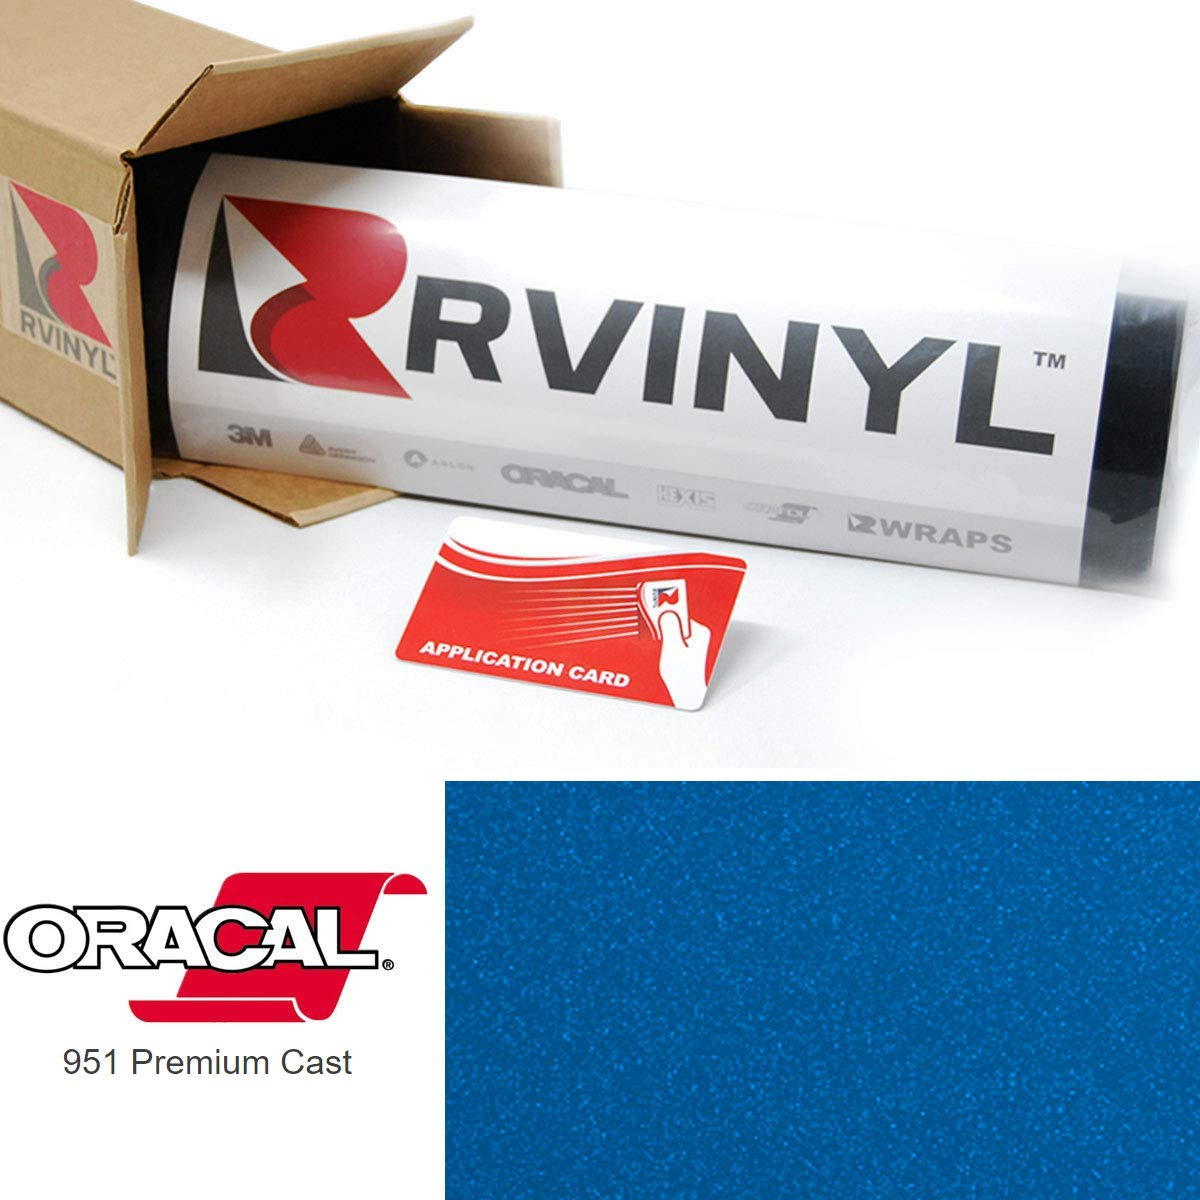 ORACAL 951 Bever Blue Metallic 580 Premium Cast Film 2ft x 10yd W/Application Card Vinyl Film Sheet Roll - for Cricut, Silhouette Cameo, Craft and Sign Cutters